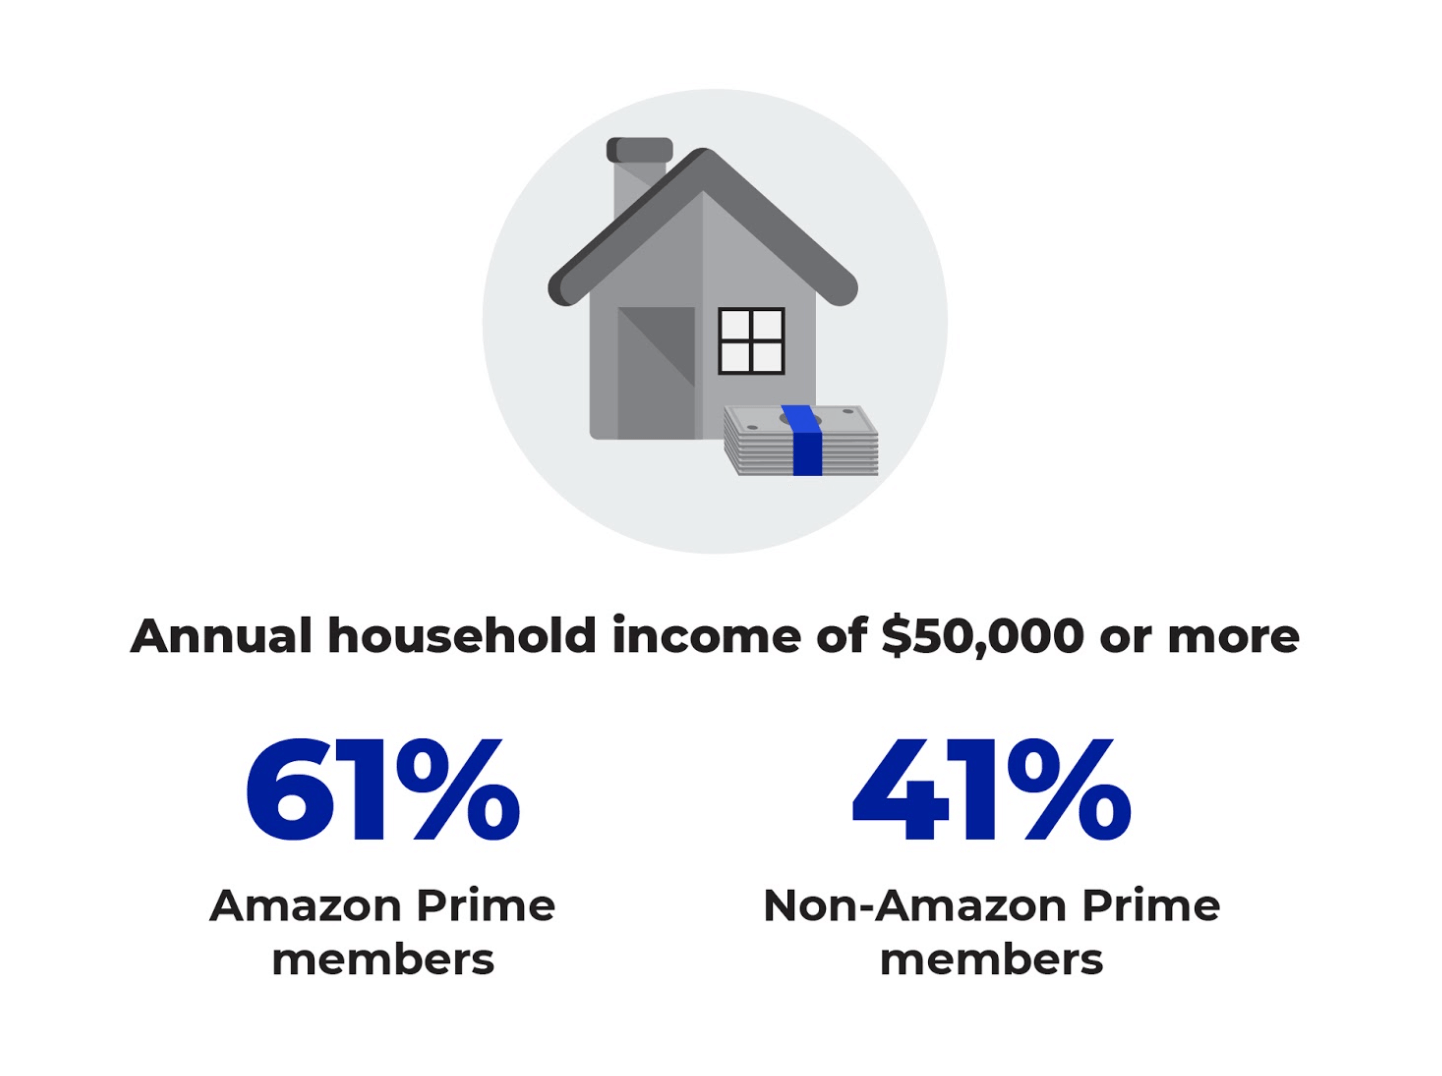 Amazon consumer household income